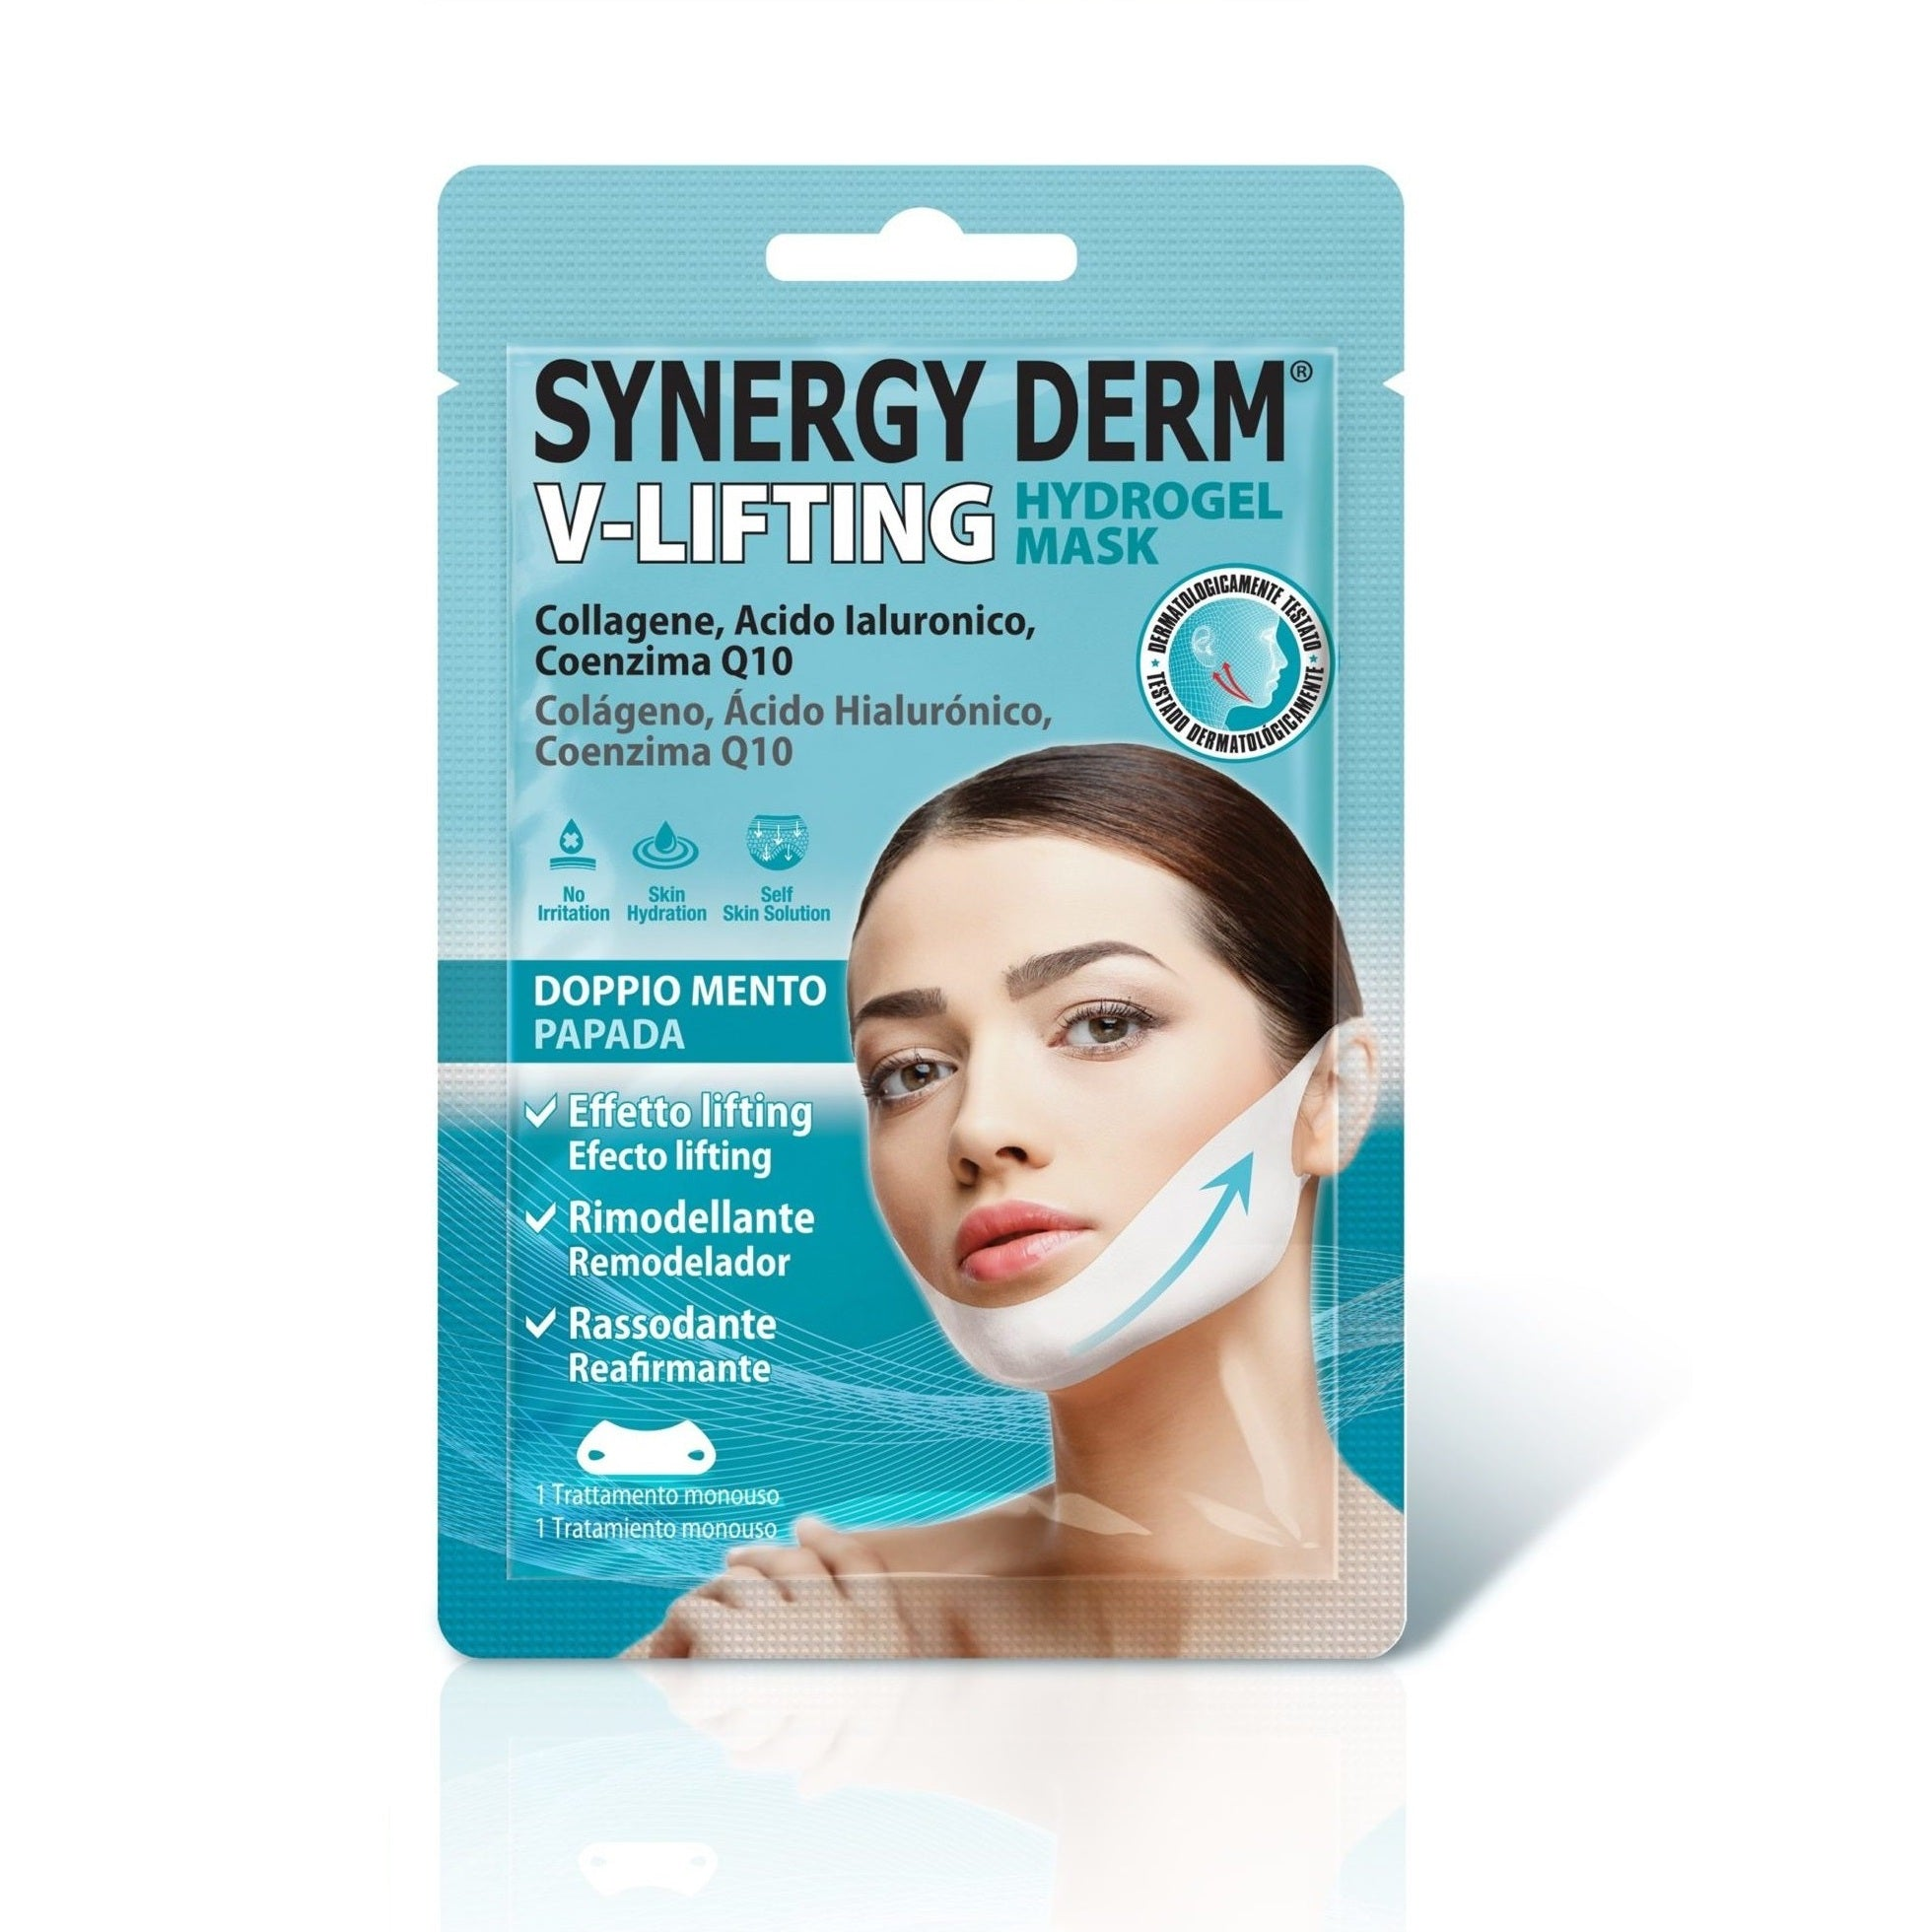 SYNERGY DERM V-LIFTING HYDROGEL MASK DOPPIO MENTO